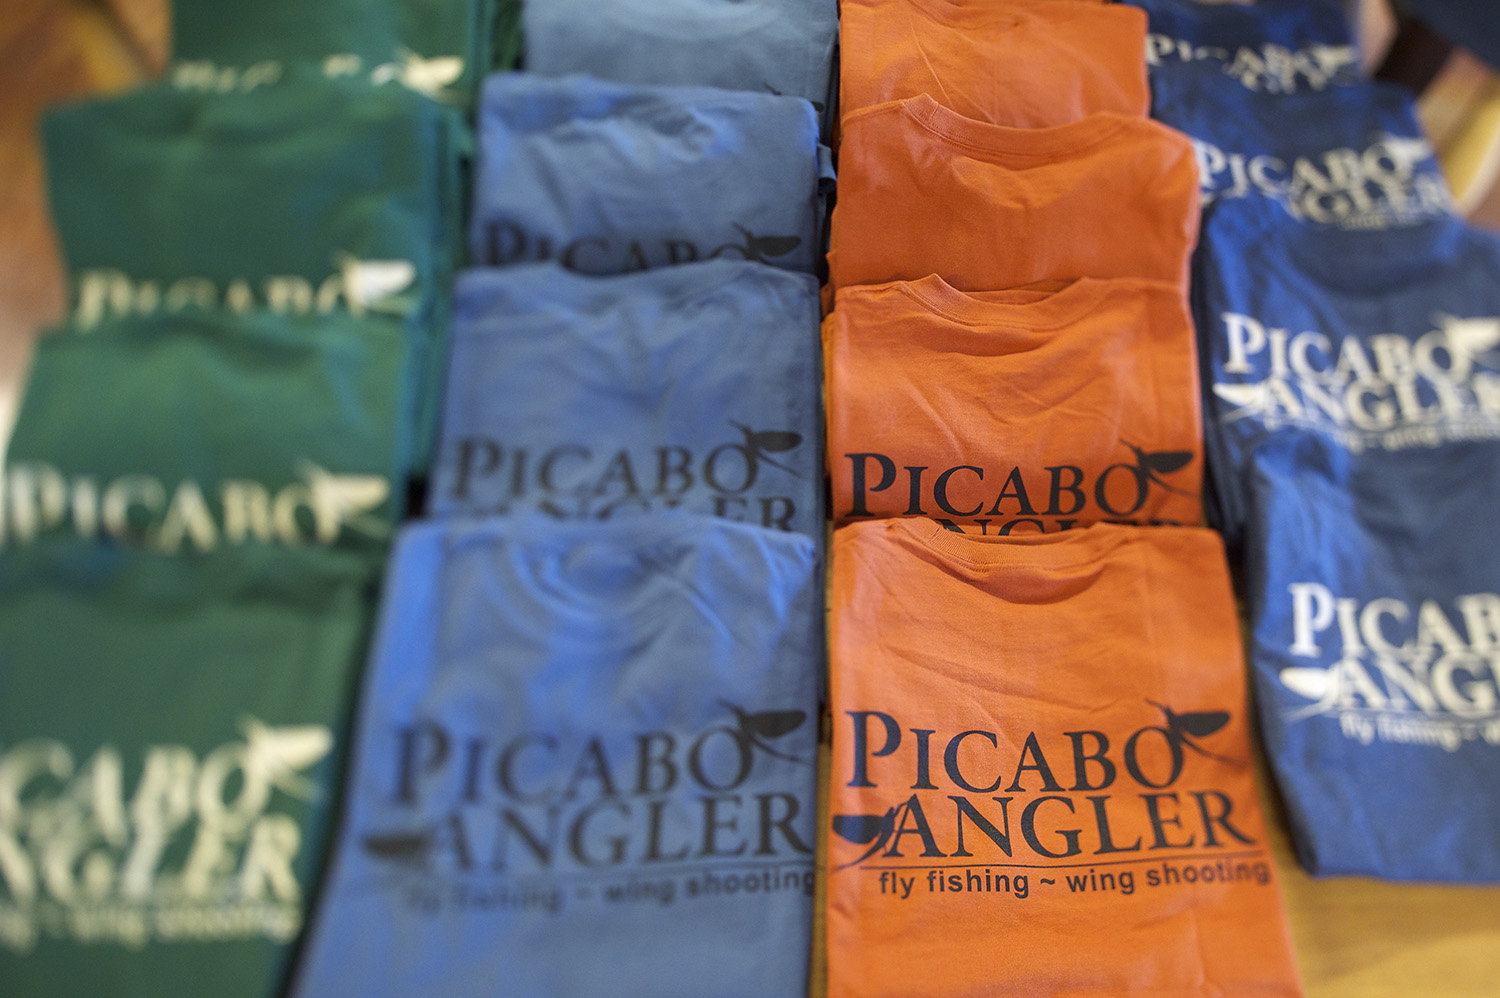 Picabo Angler T-Shirts hot off the press. You know you need one!